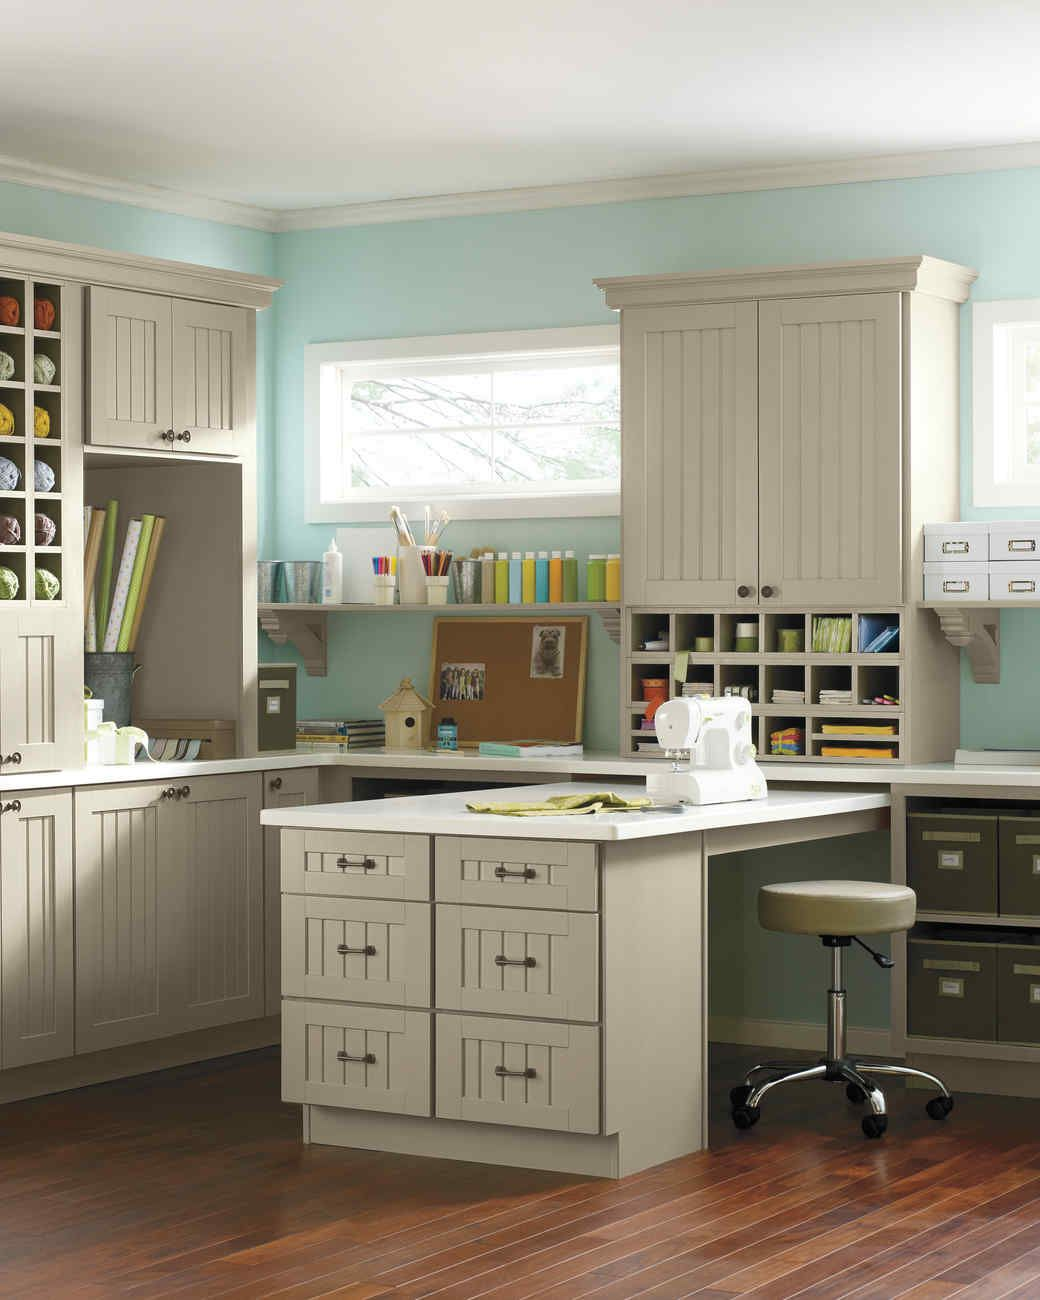 Living Cabinet Solutions from The Home Depot | Home, We and The o'jays